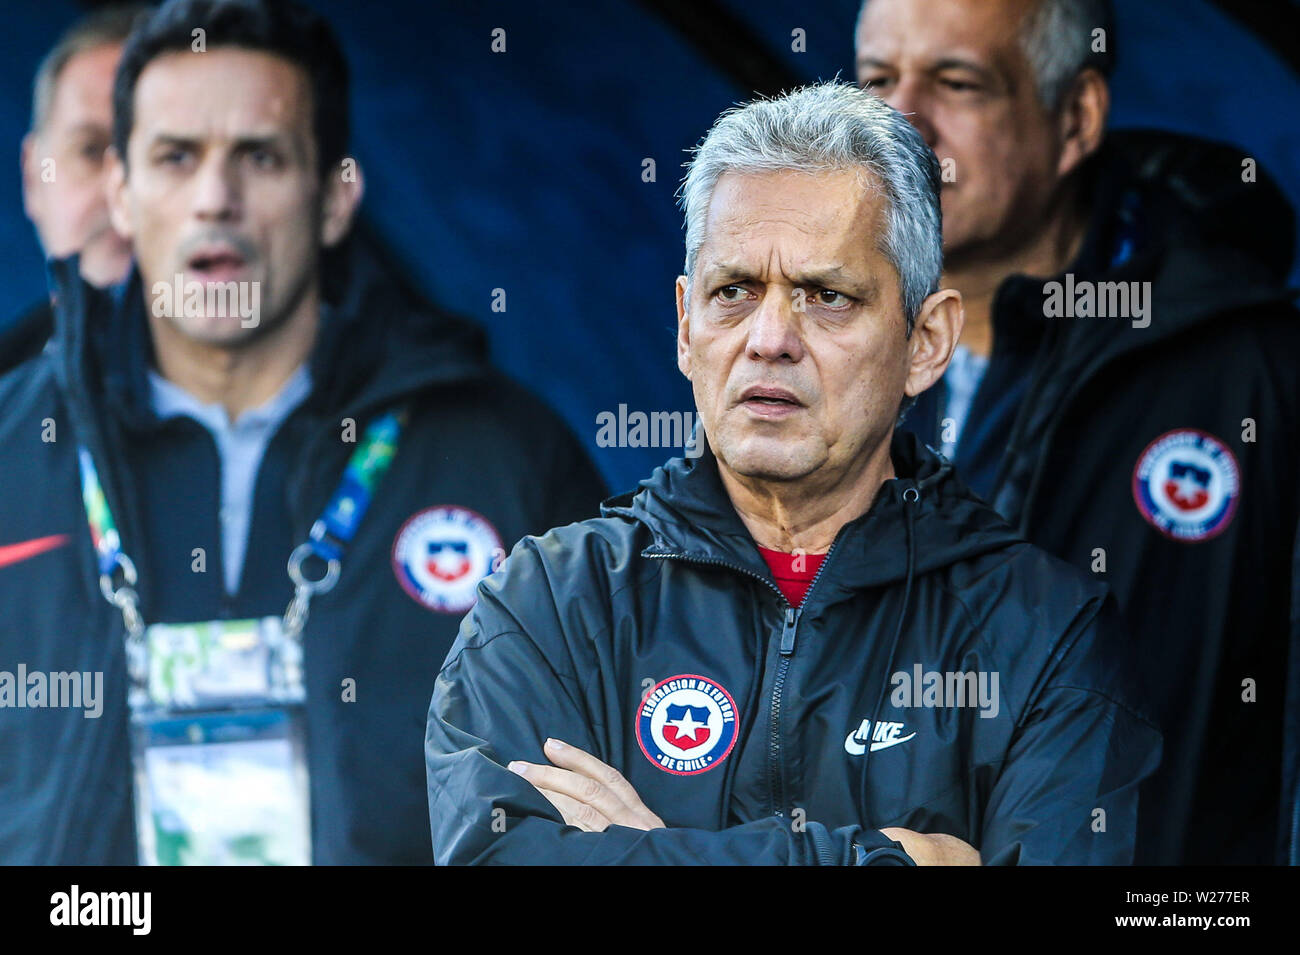 Brazil. 6th July, 2019. Reinaldo Rueda in the Game of the match between Argentina X Chile valid for third place dispute of Copa America 2019, in the Arena Corinthians, in São Paulo, this Saturday (06). Photo: Geraldo Bubniak Credit: Geraldo Bubniak/ZUMA Wire/Alamy Live News - Stock Image